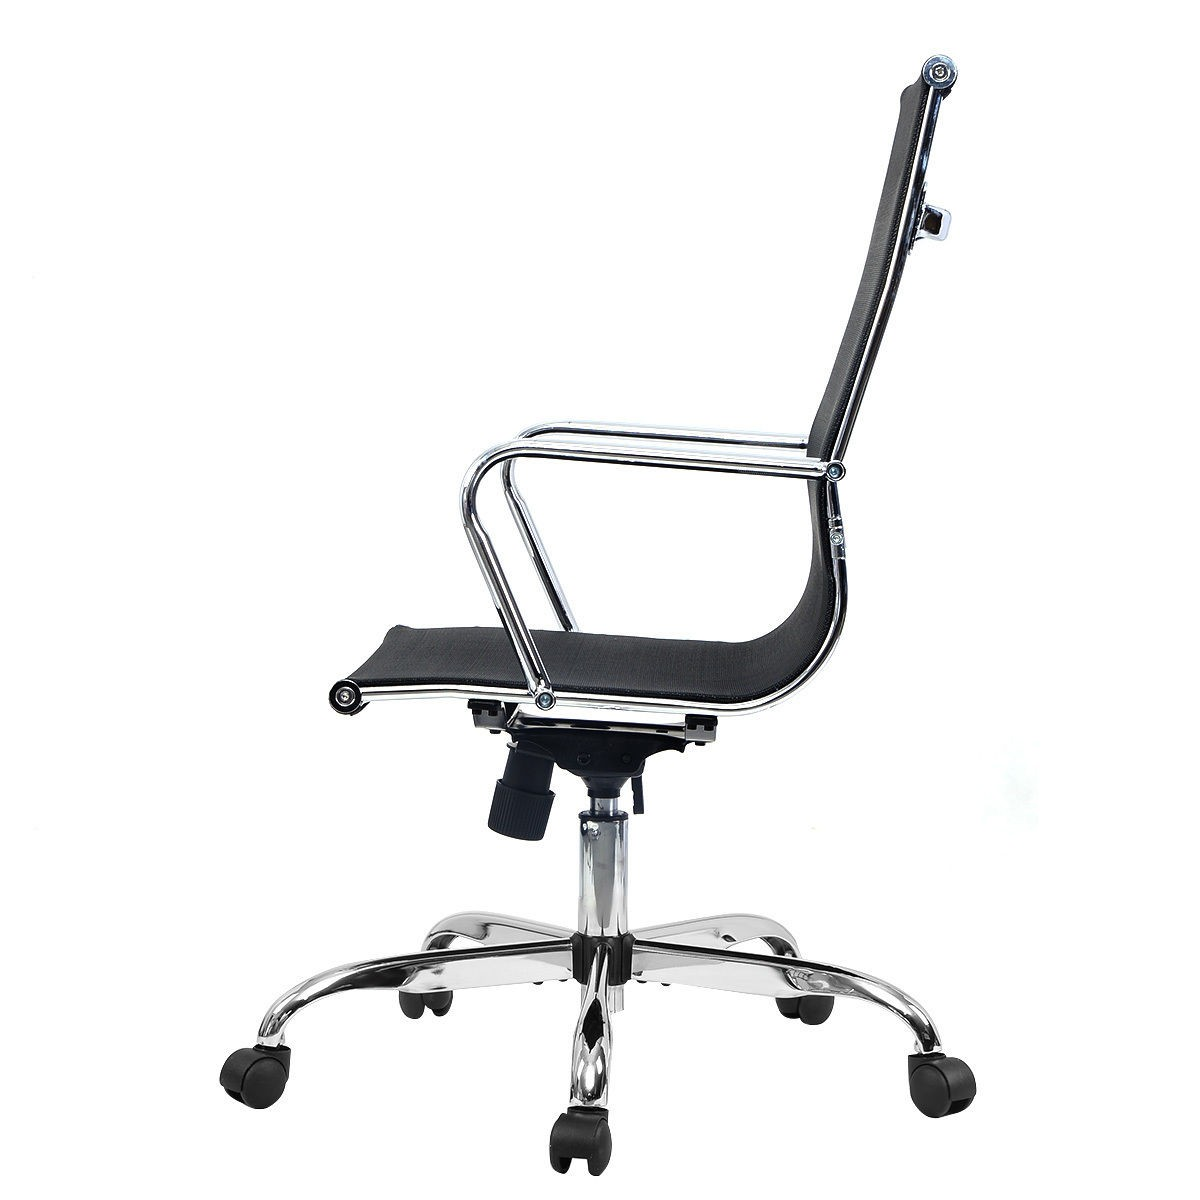 Mesh Ergonomic Office Chair Ergonomic Office Chair Modern Mesh High Back Executive